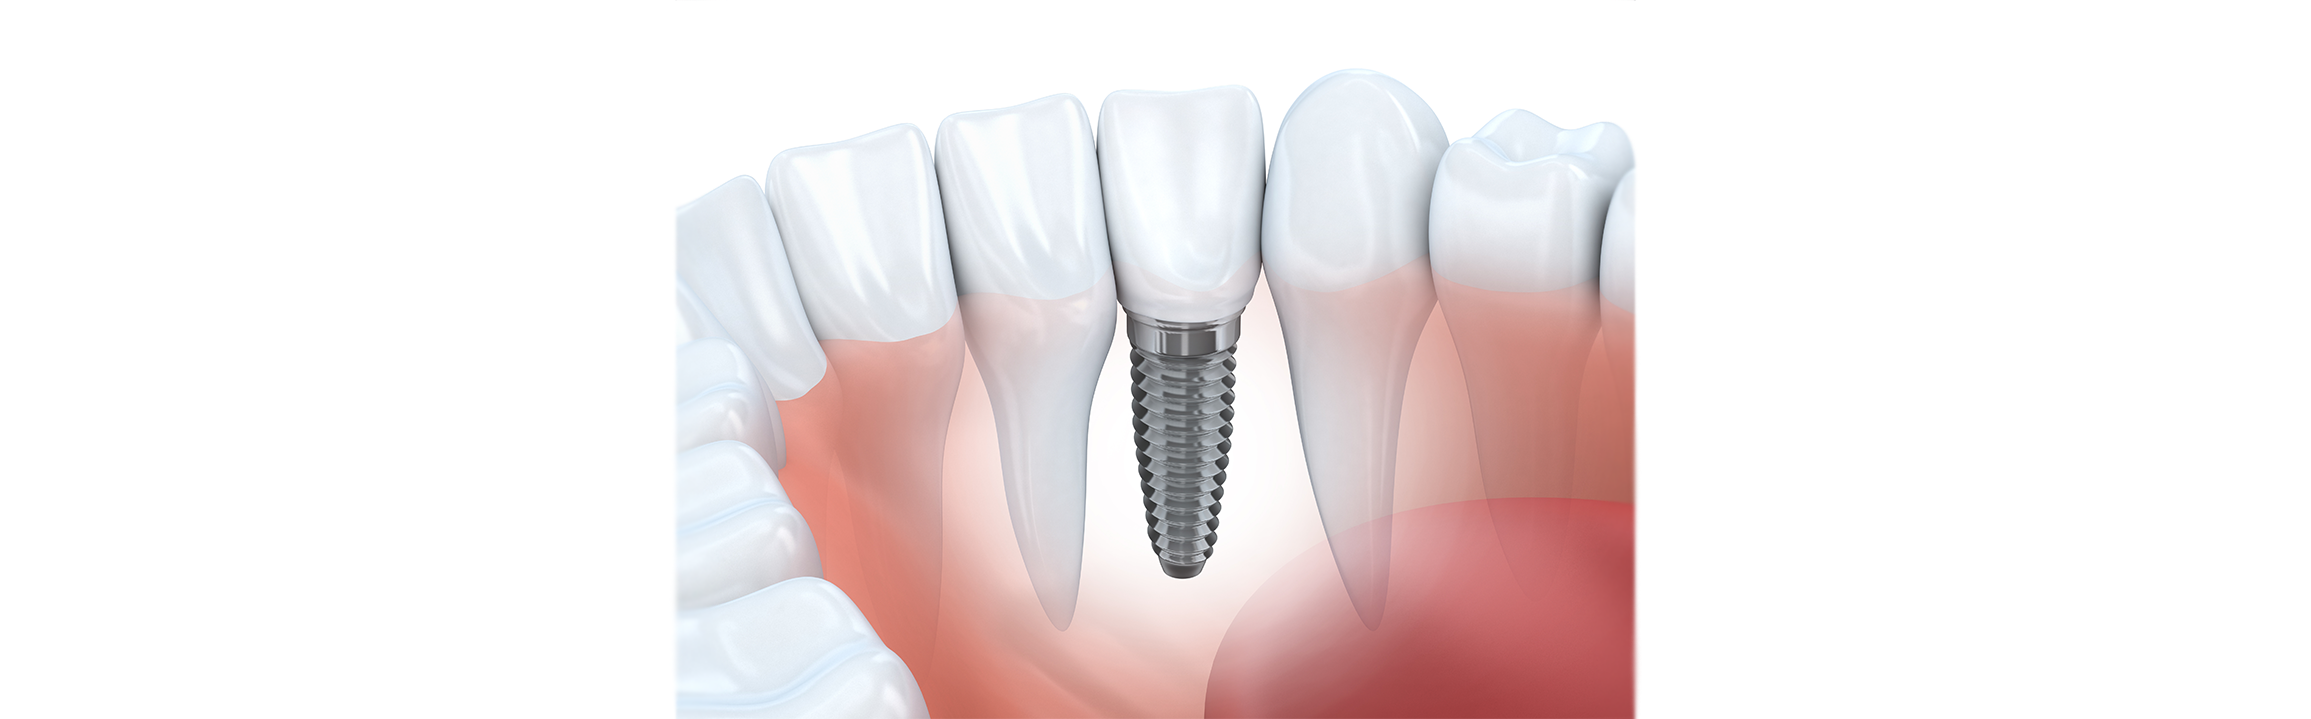 Will Your Dental Implants Change Over Time?